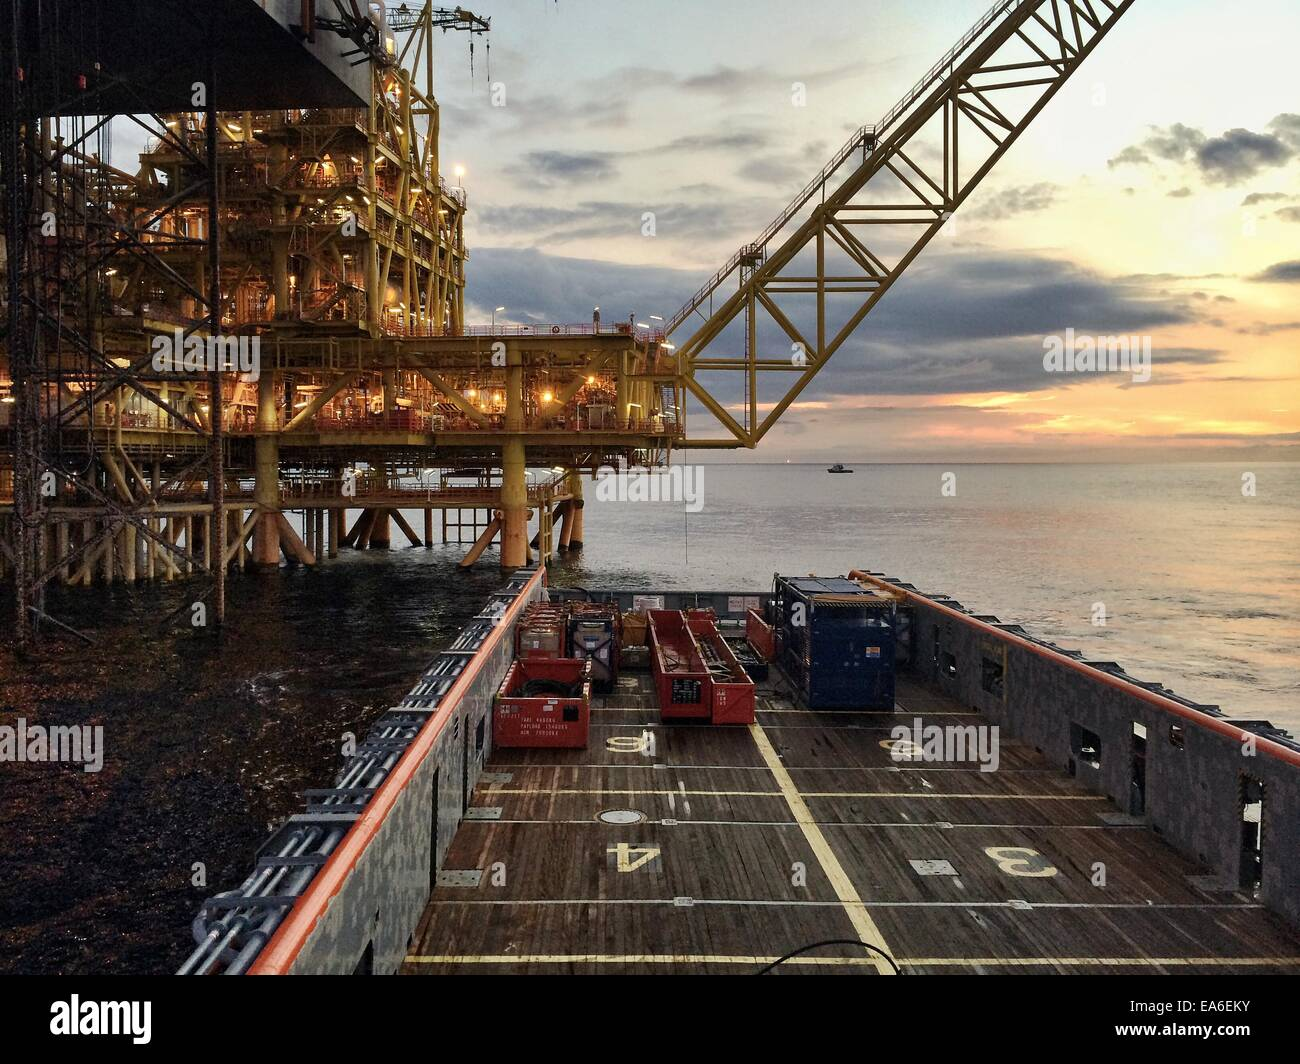 Central processing oil platform on cargo operation with offshore vessel at sunrise - Stock Image